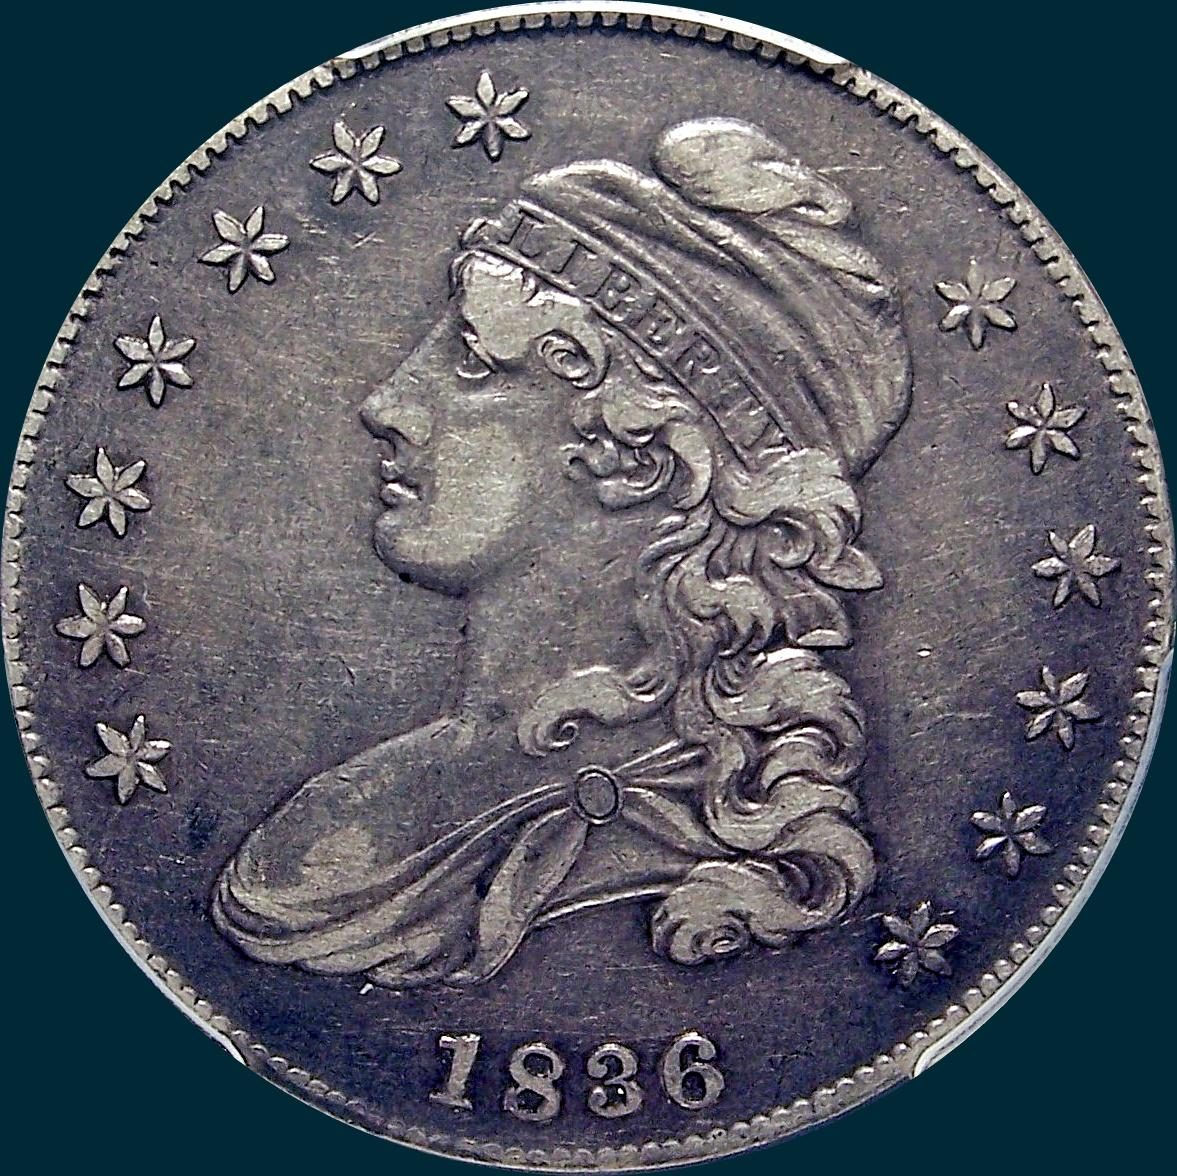 1836, O-108, 1836 over 1336, Capped Bust, Half Dollar